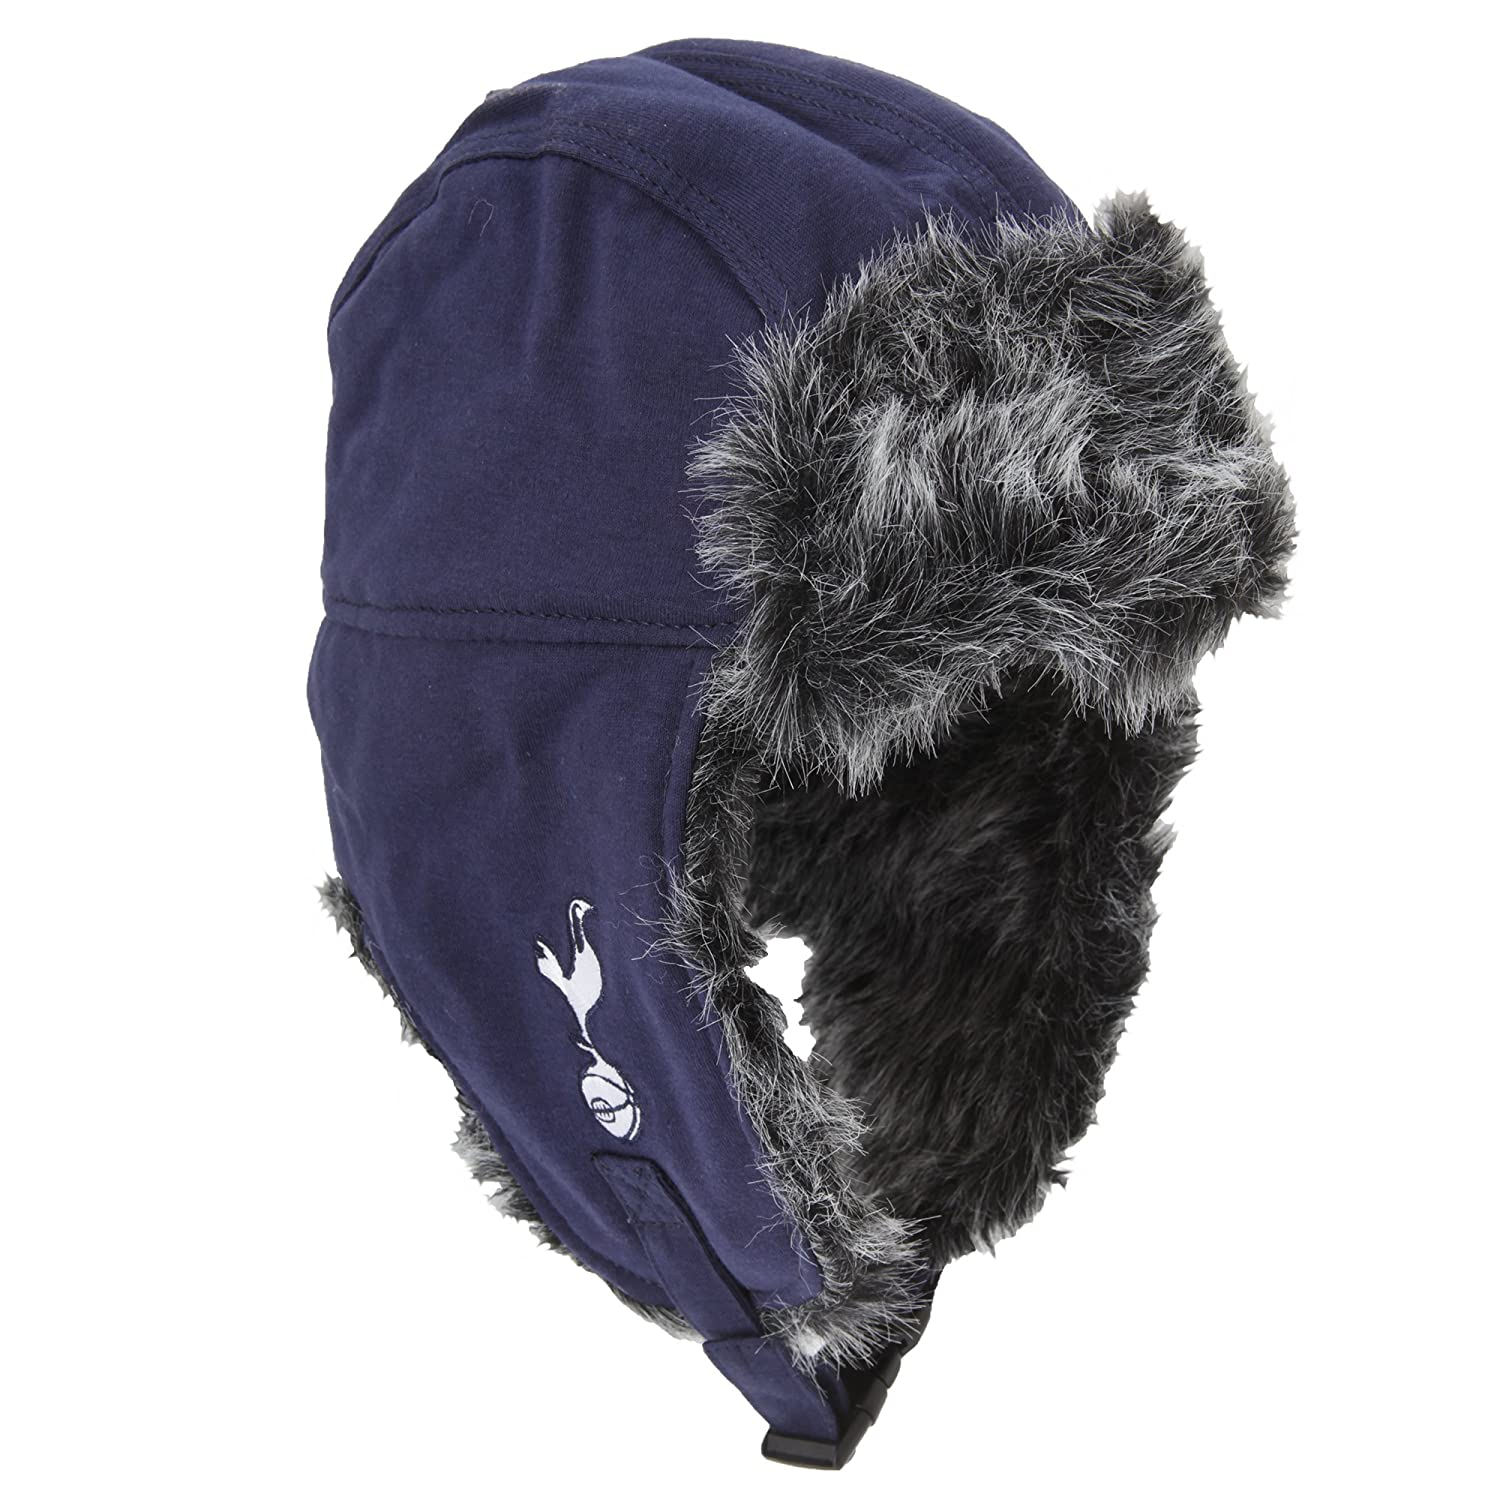 2f6a95609eaf2 Tottenham Hotspur FC Adults Official Football Crest Trapper Hat (One Size)  (Blue Grey)  Amazon.co.uk  Clothing